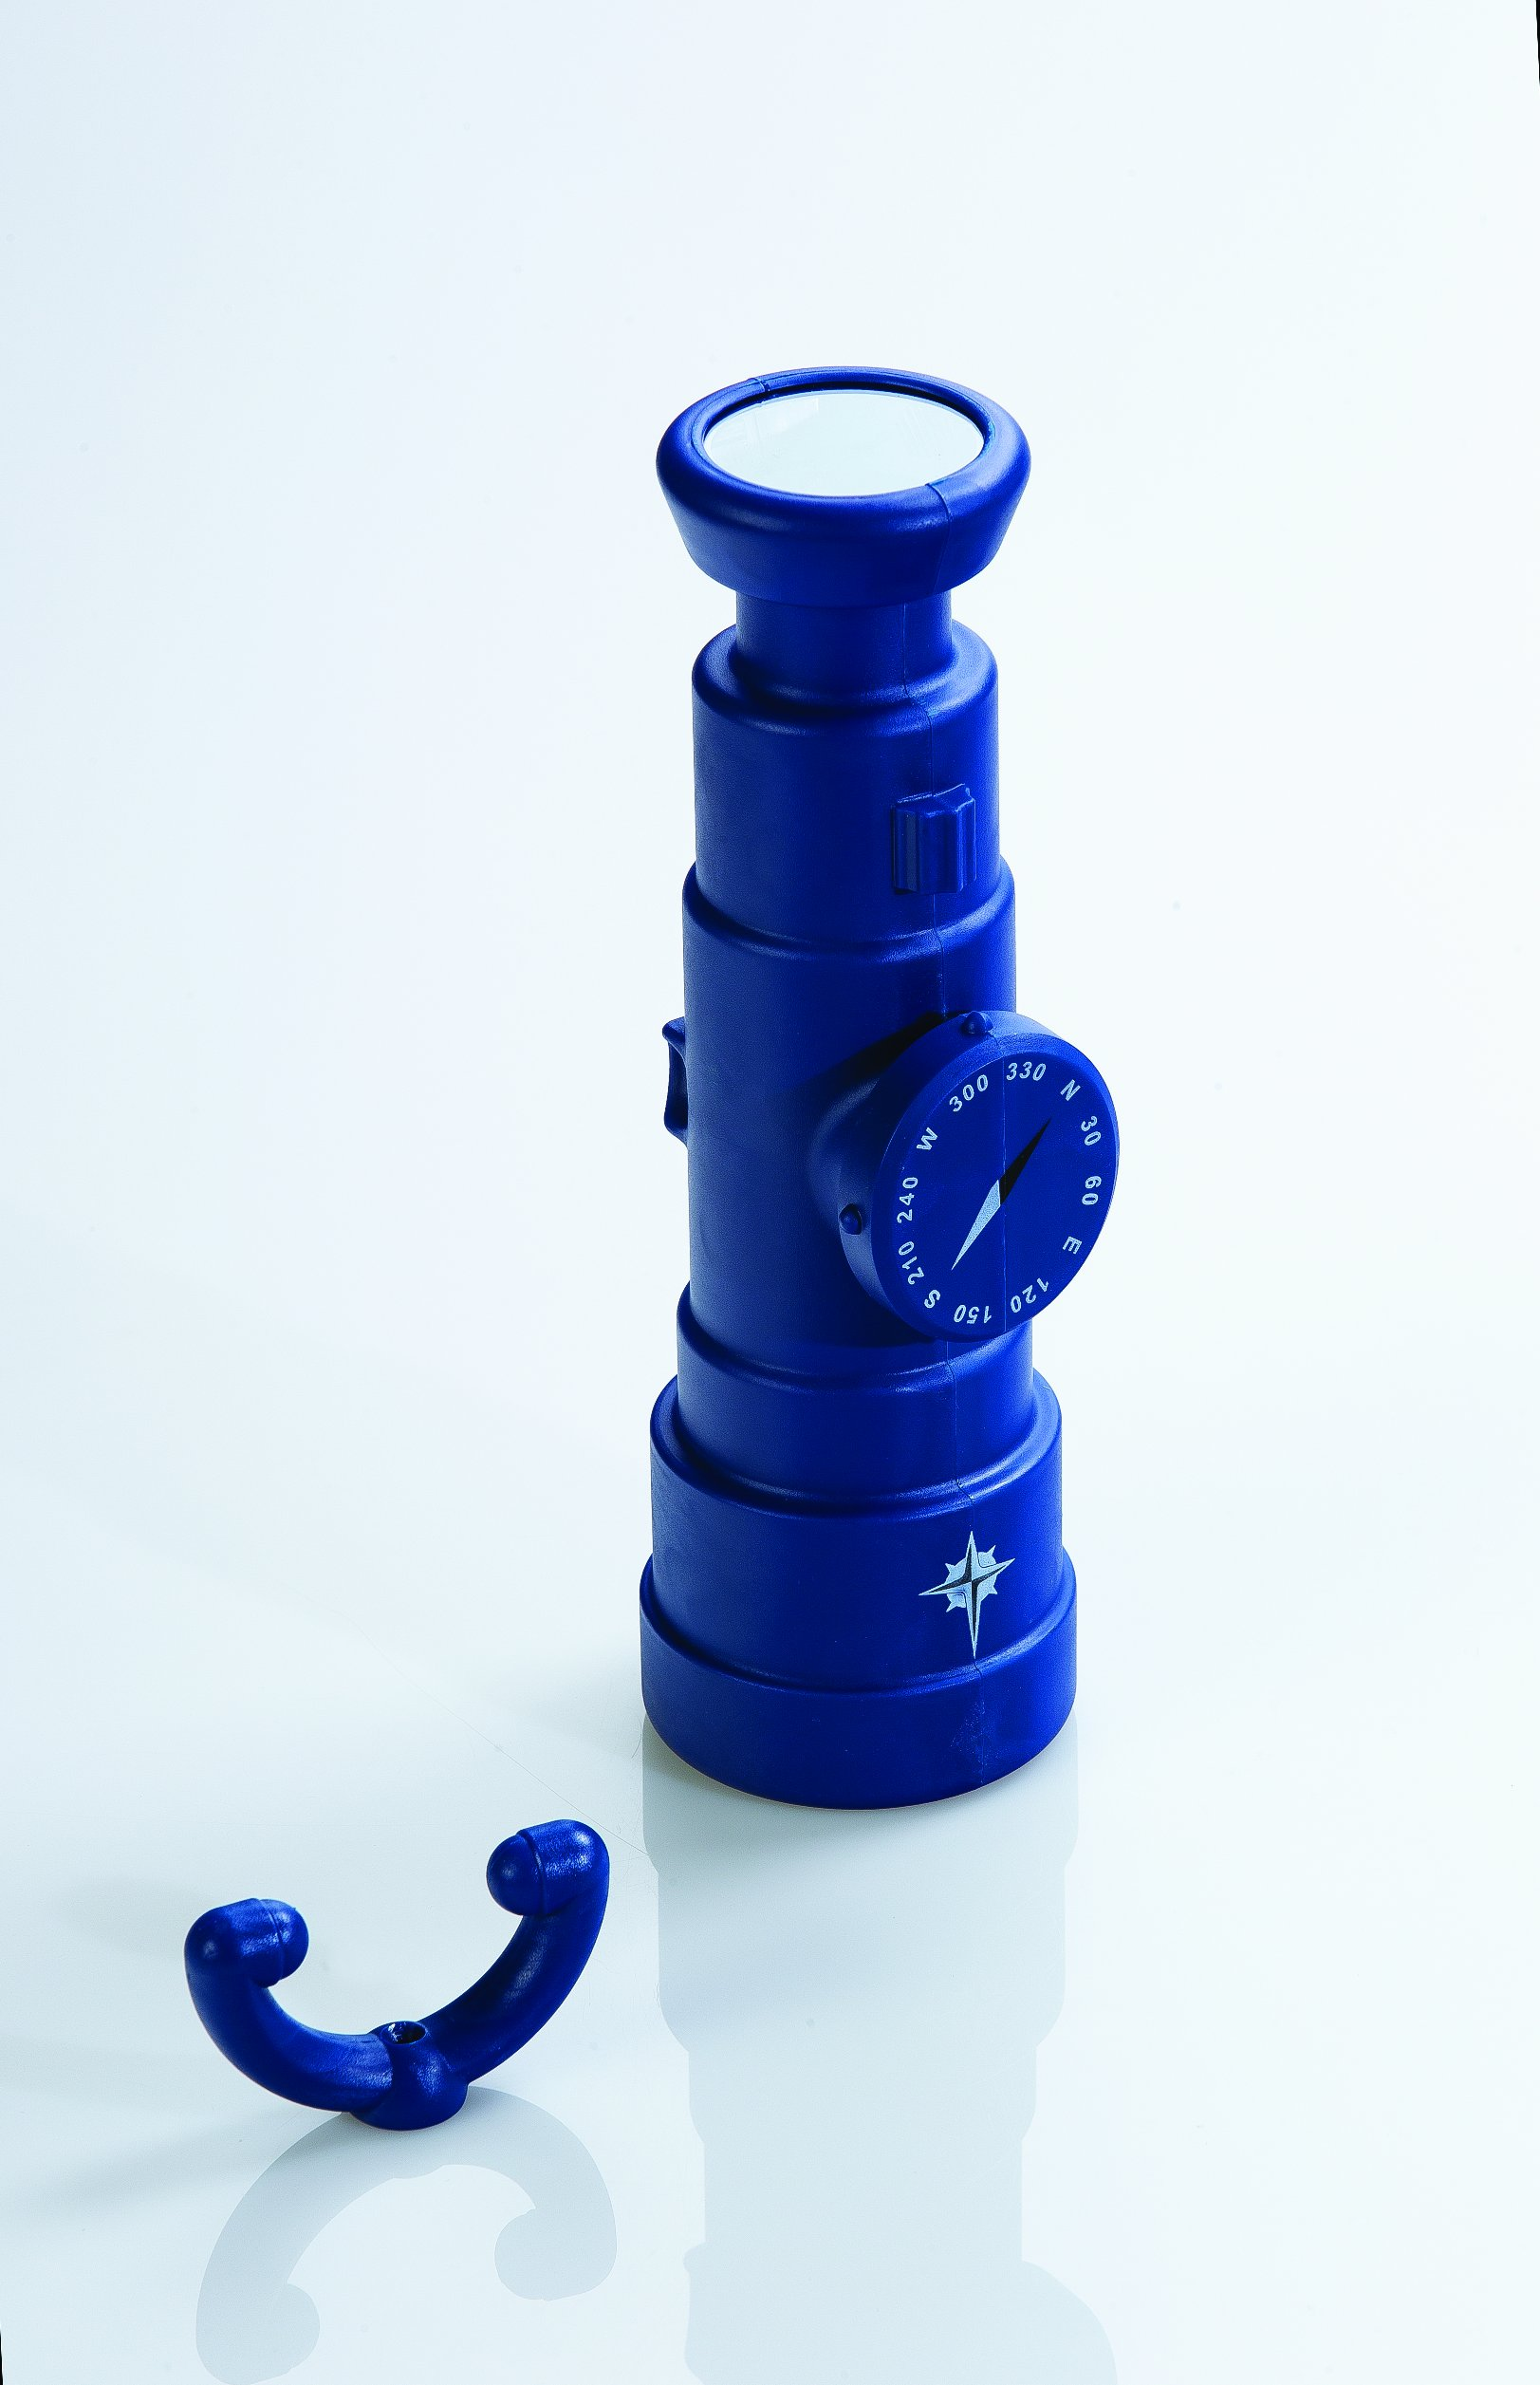 Creative Cedar Designs Playset Telescope Accessory- Blue, One Size by Creative Cedar Designs